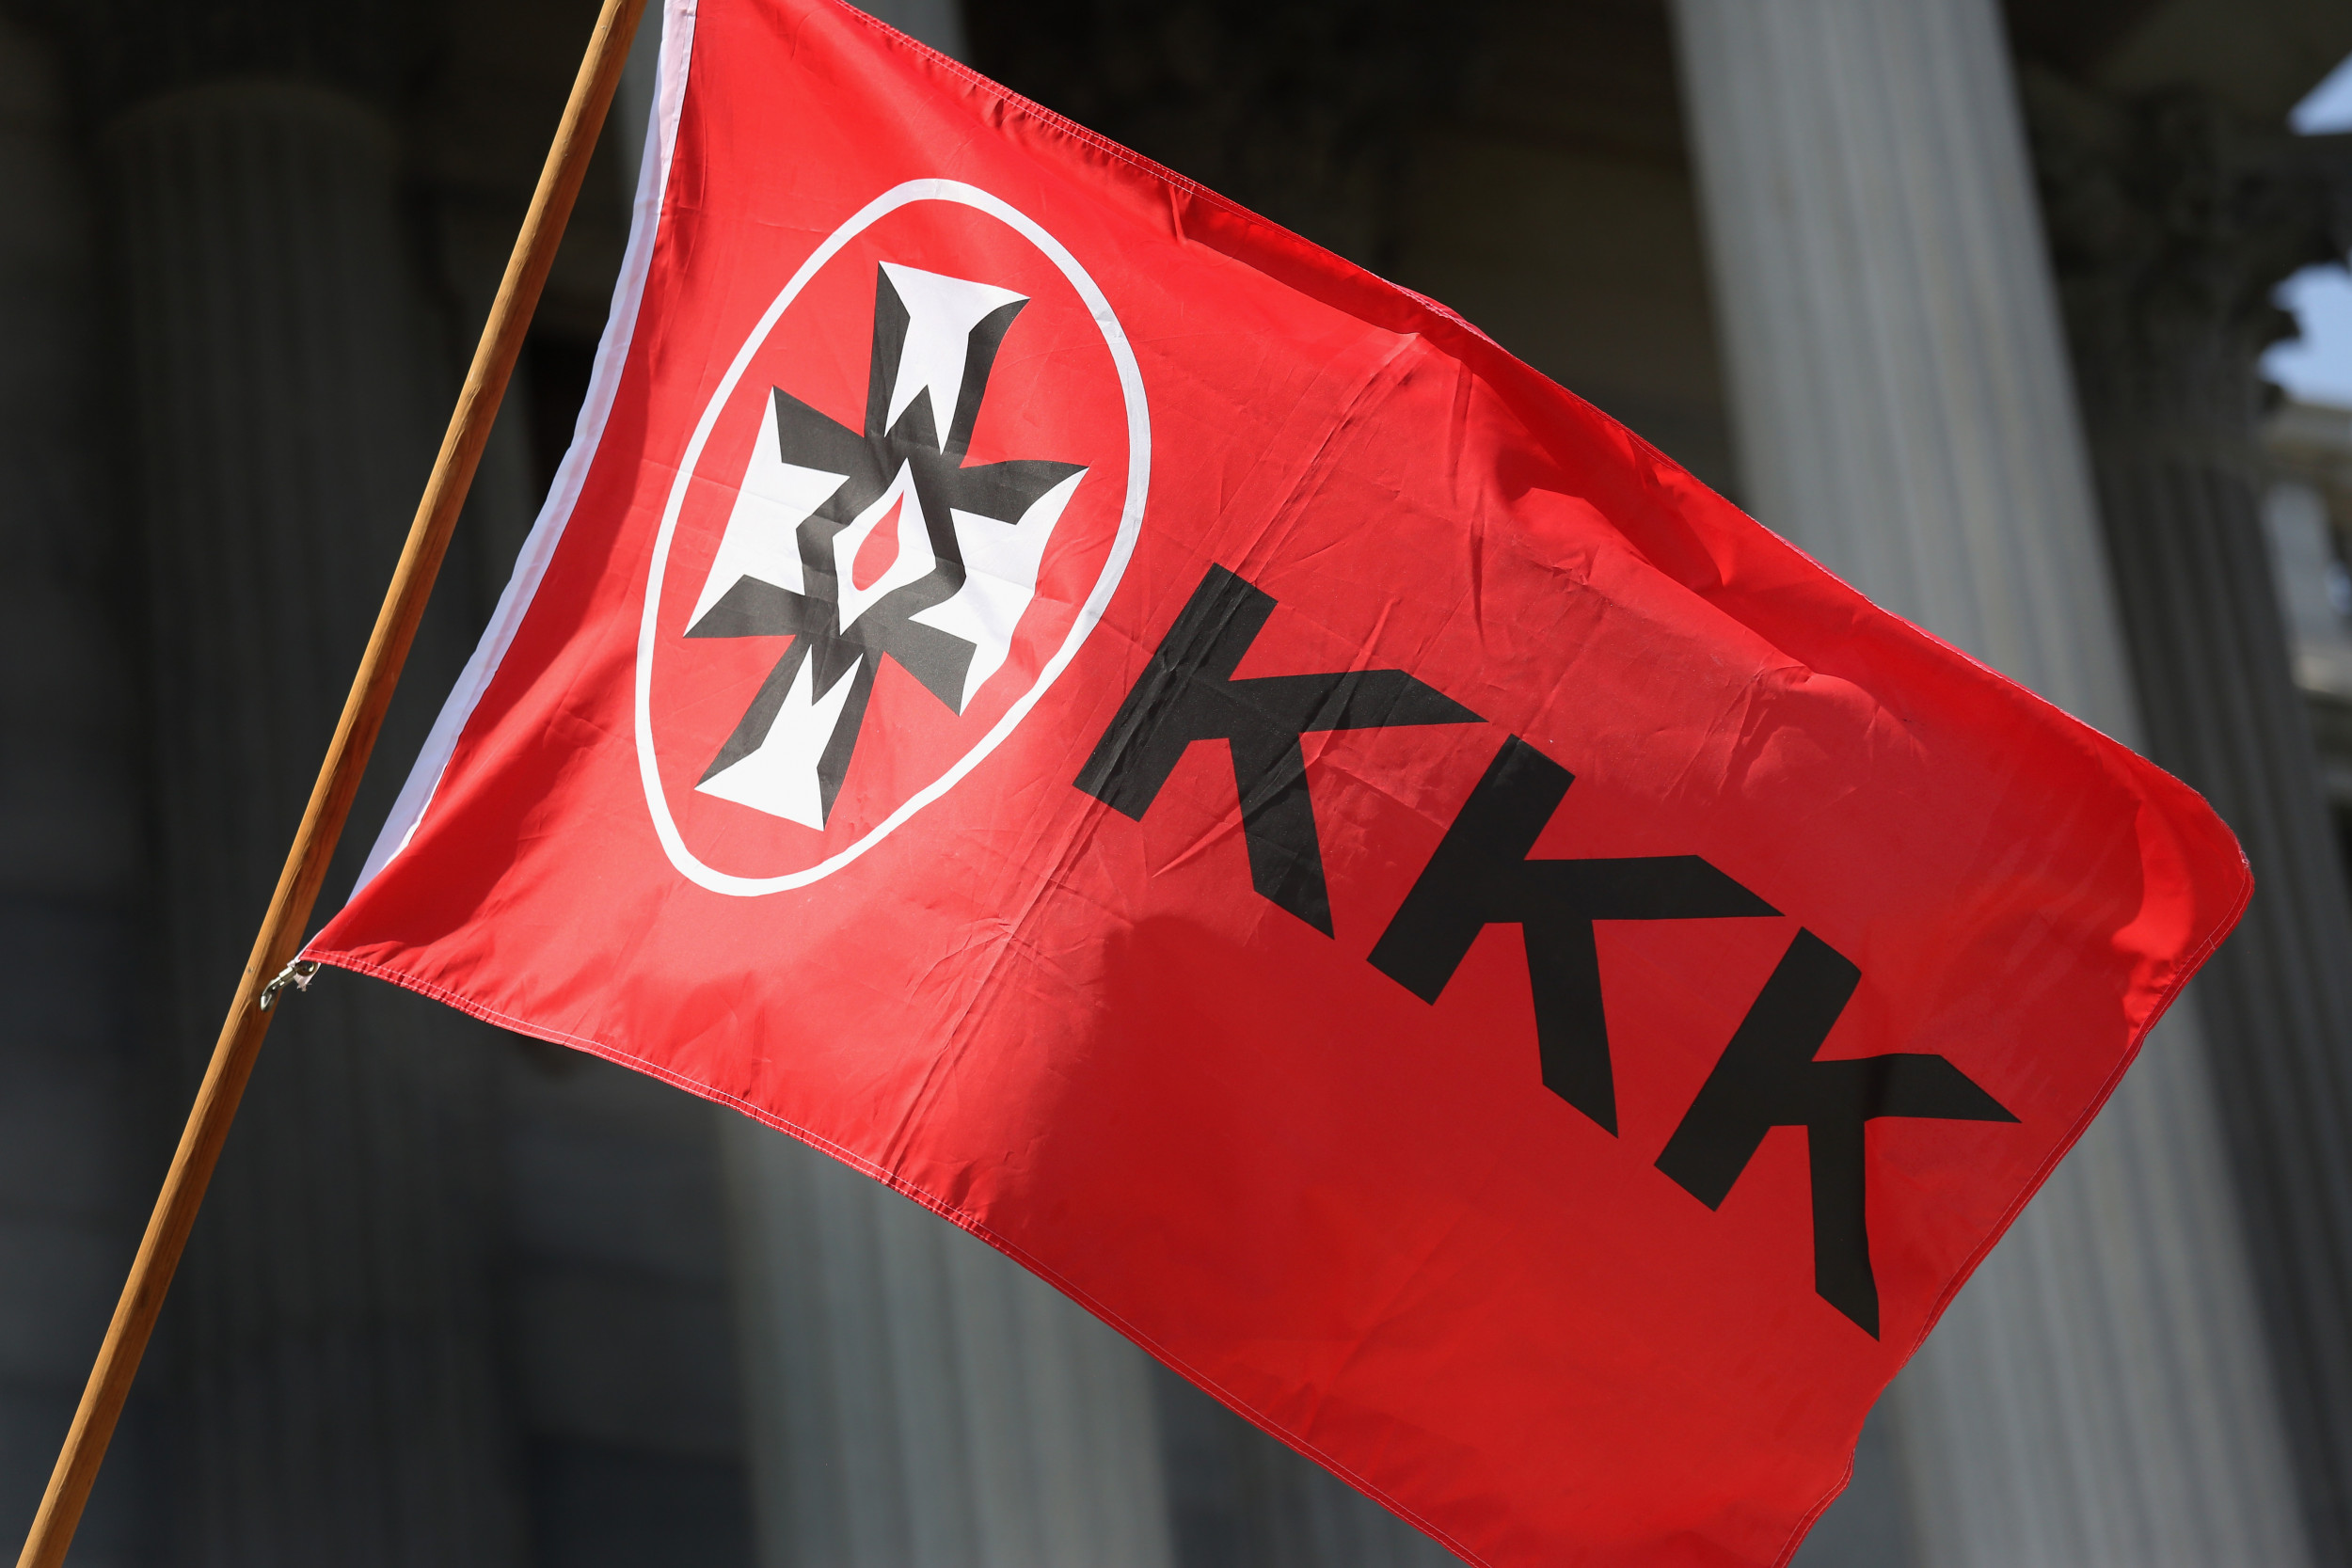 White resident hangs KKK flag in window facing Black neighbor's home